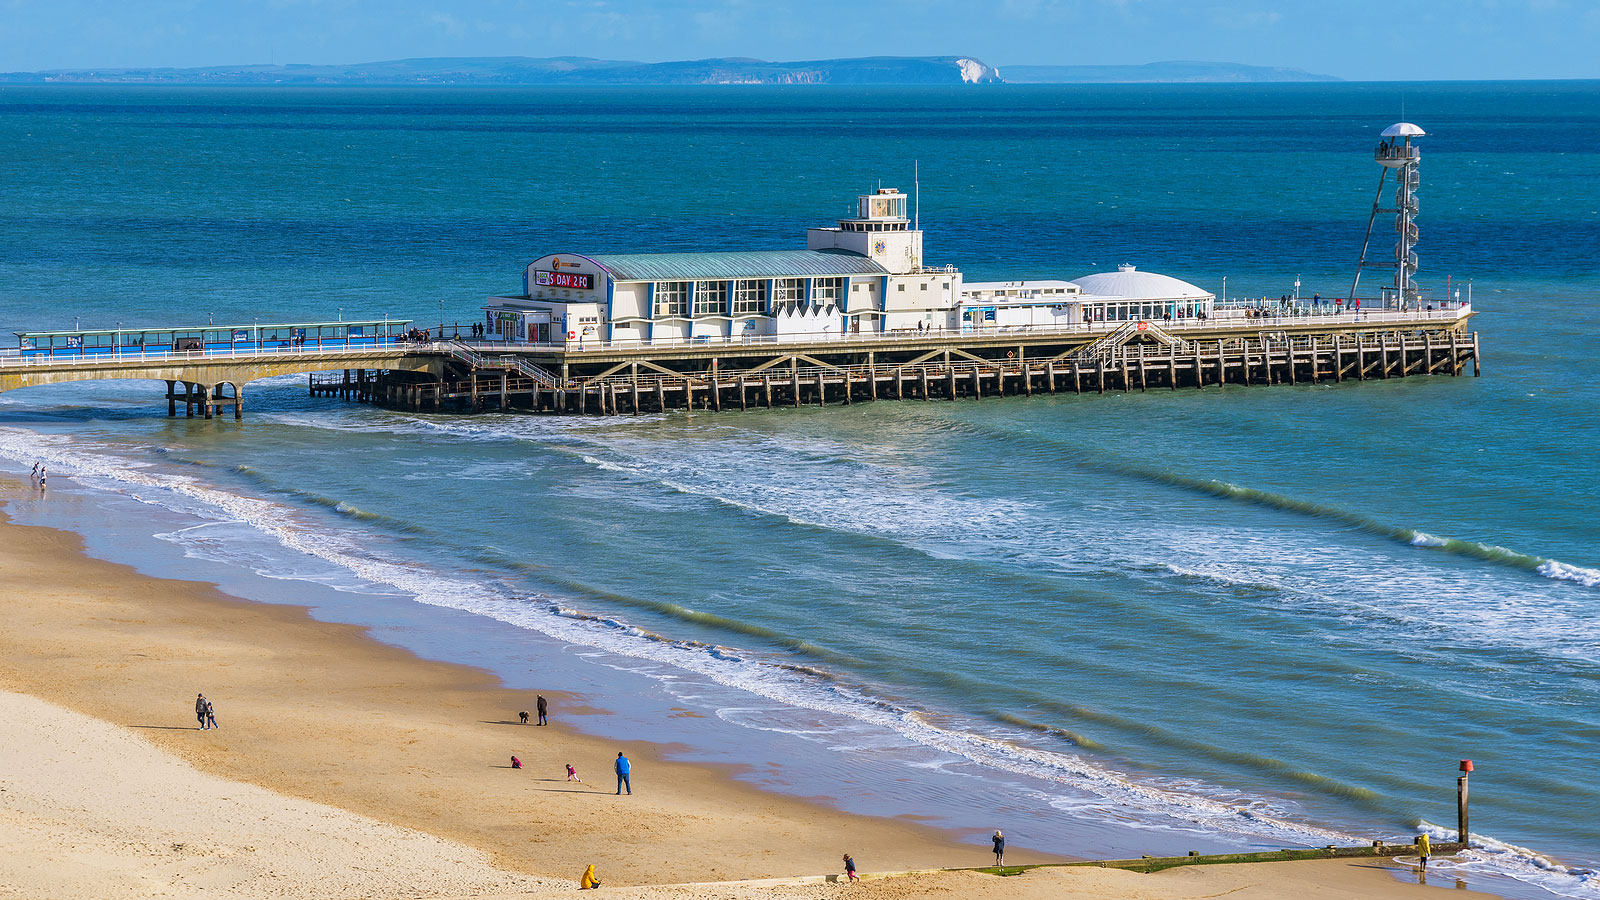 Bournemouth Chamber of Trade & Commerce